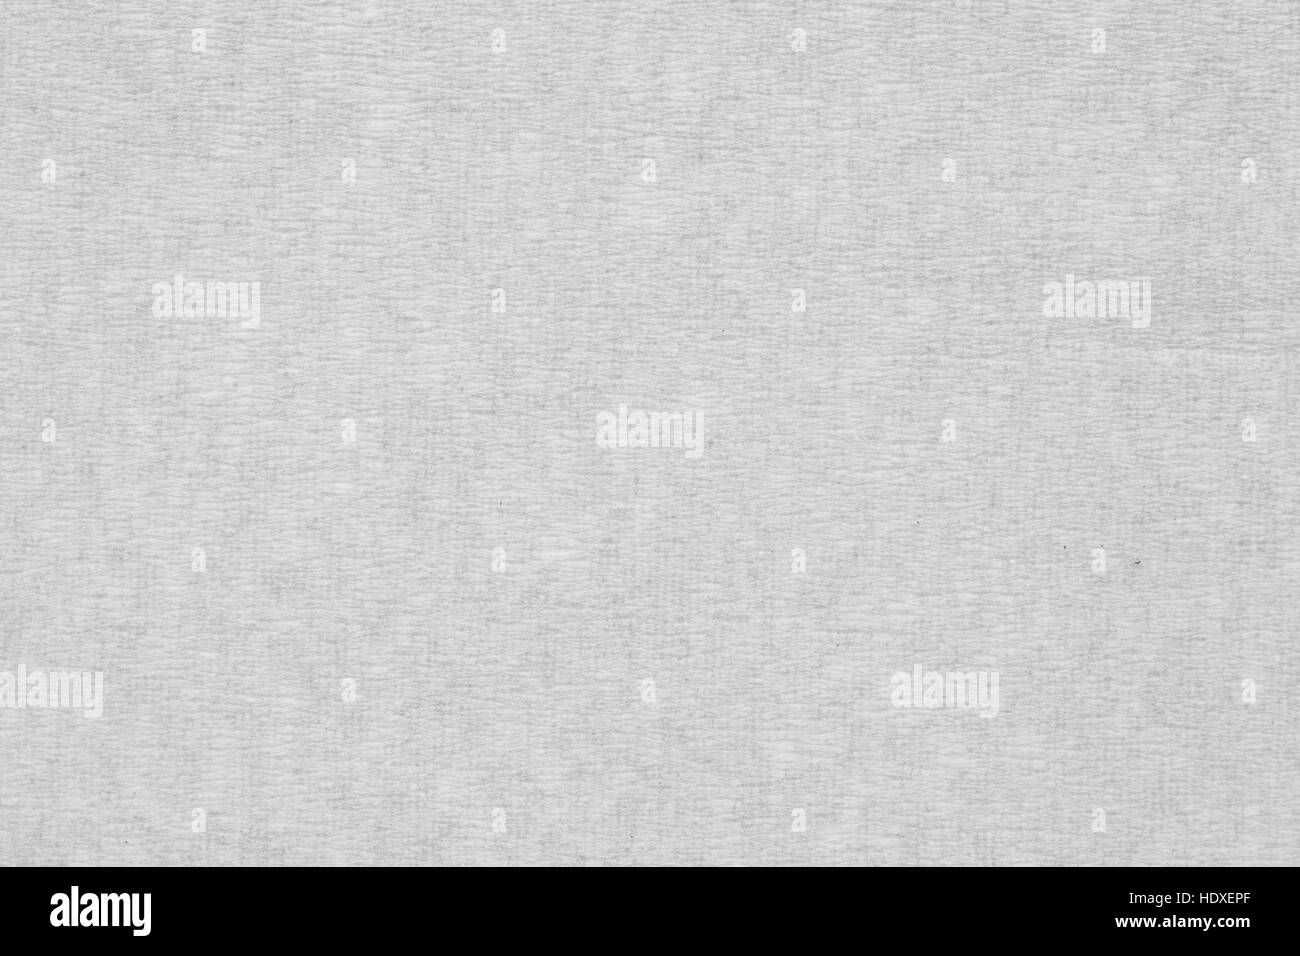 white paper rough pattern texture or abstract background - Stock Image